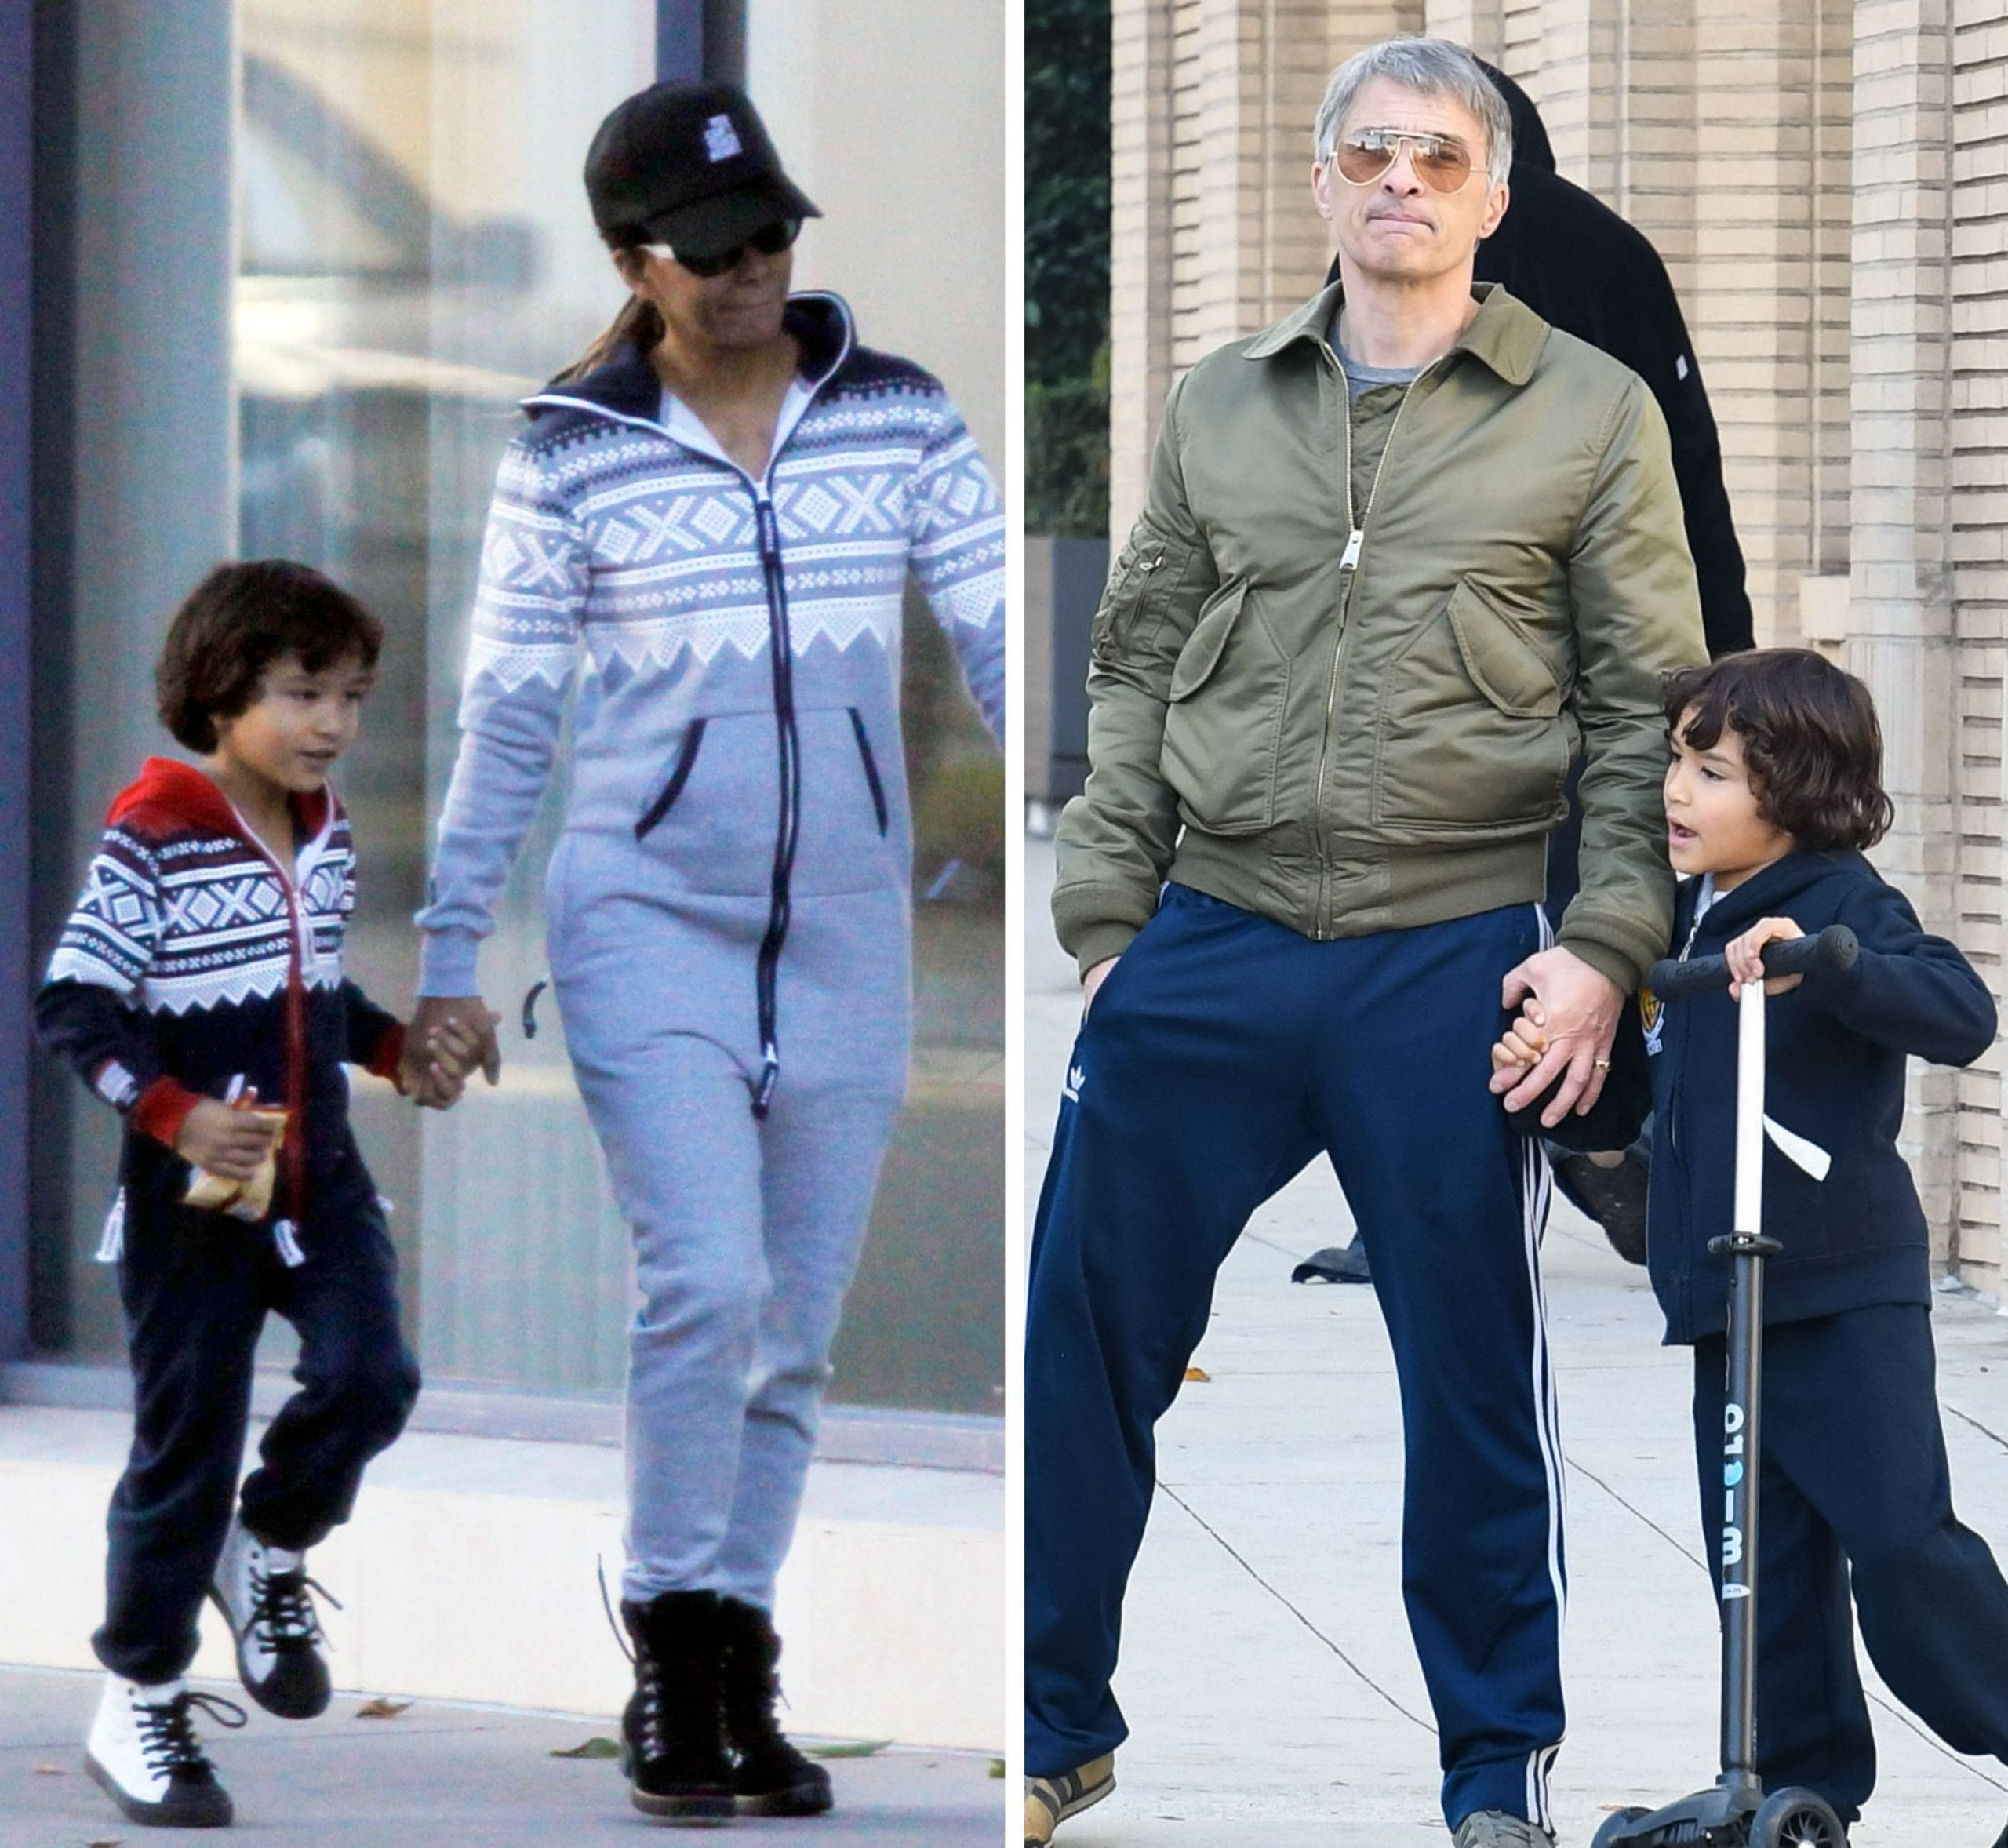 Olivier and Halle Co-Parenting